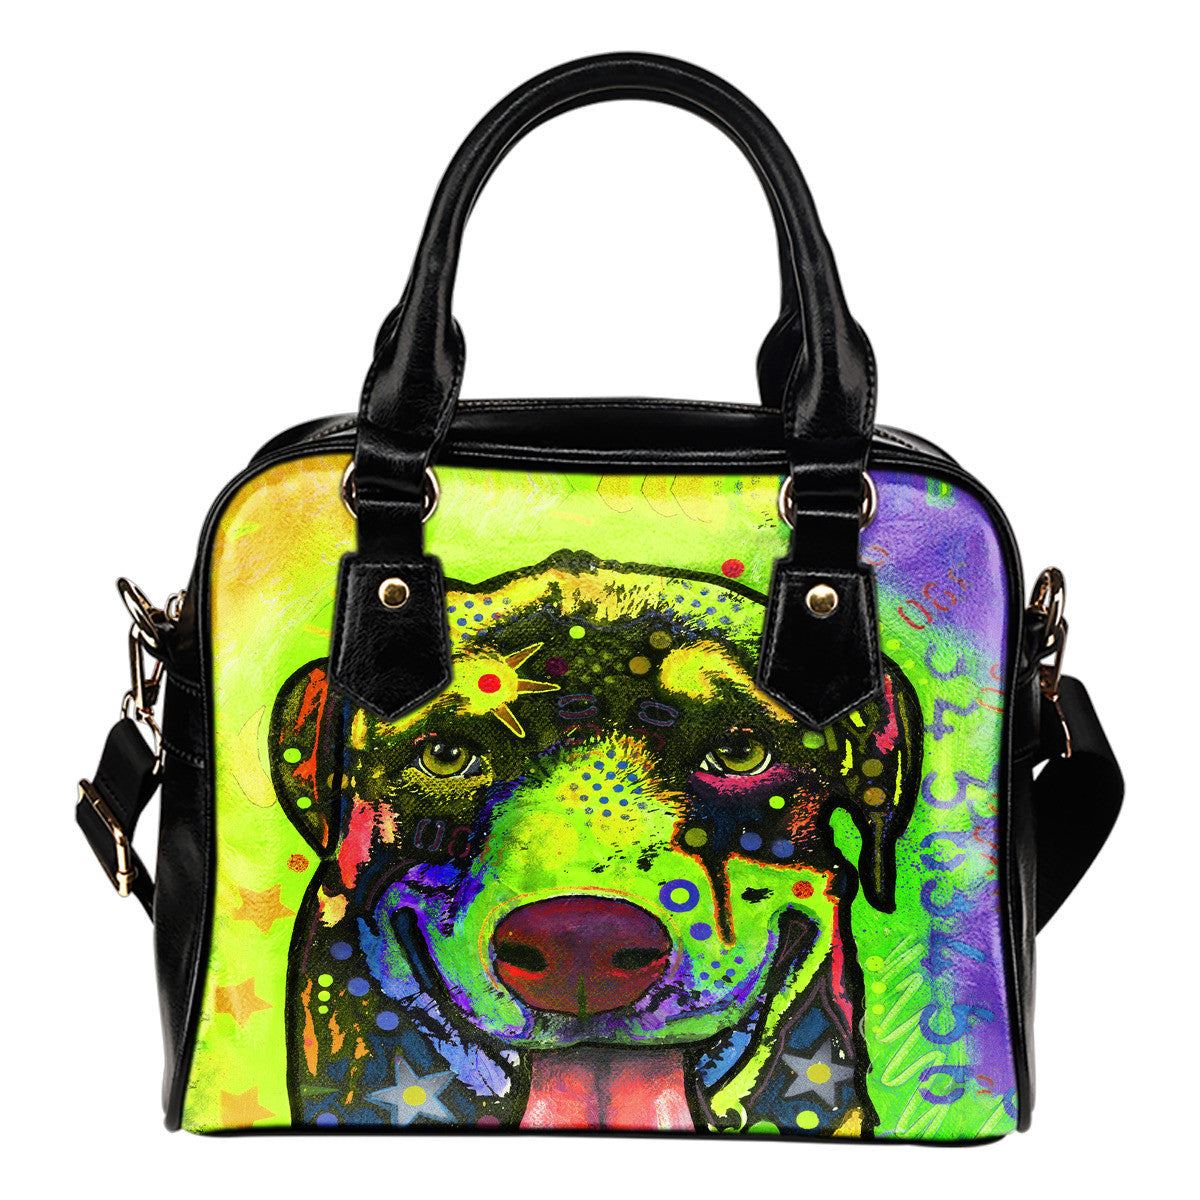 Rottweiler Shoulder Handbags #2